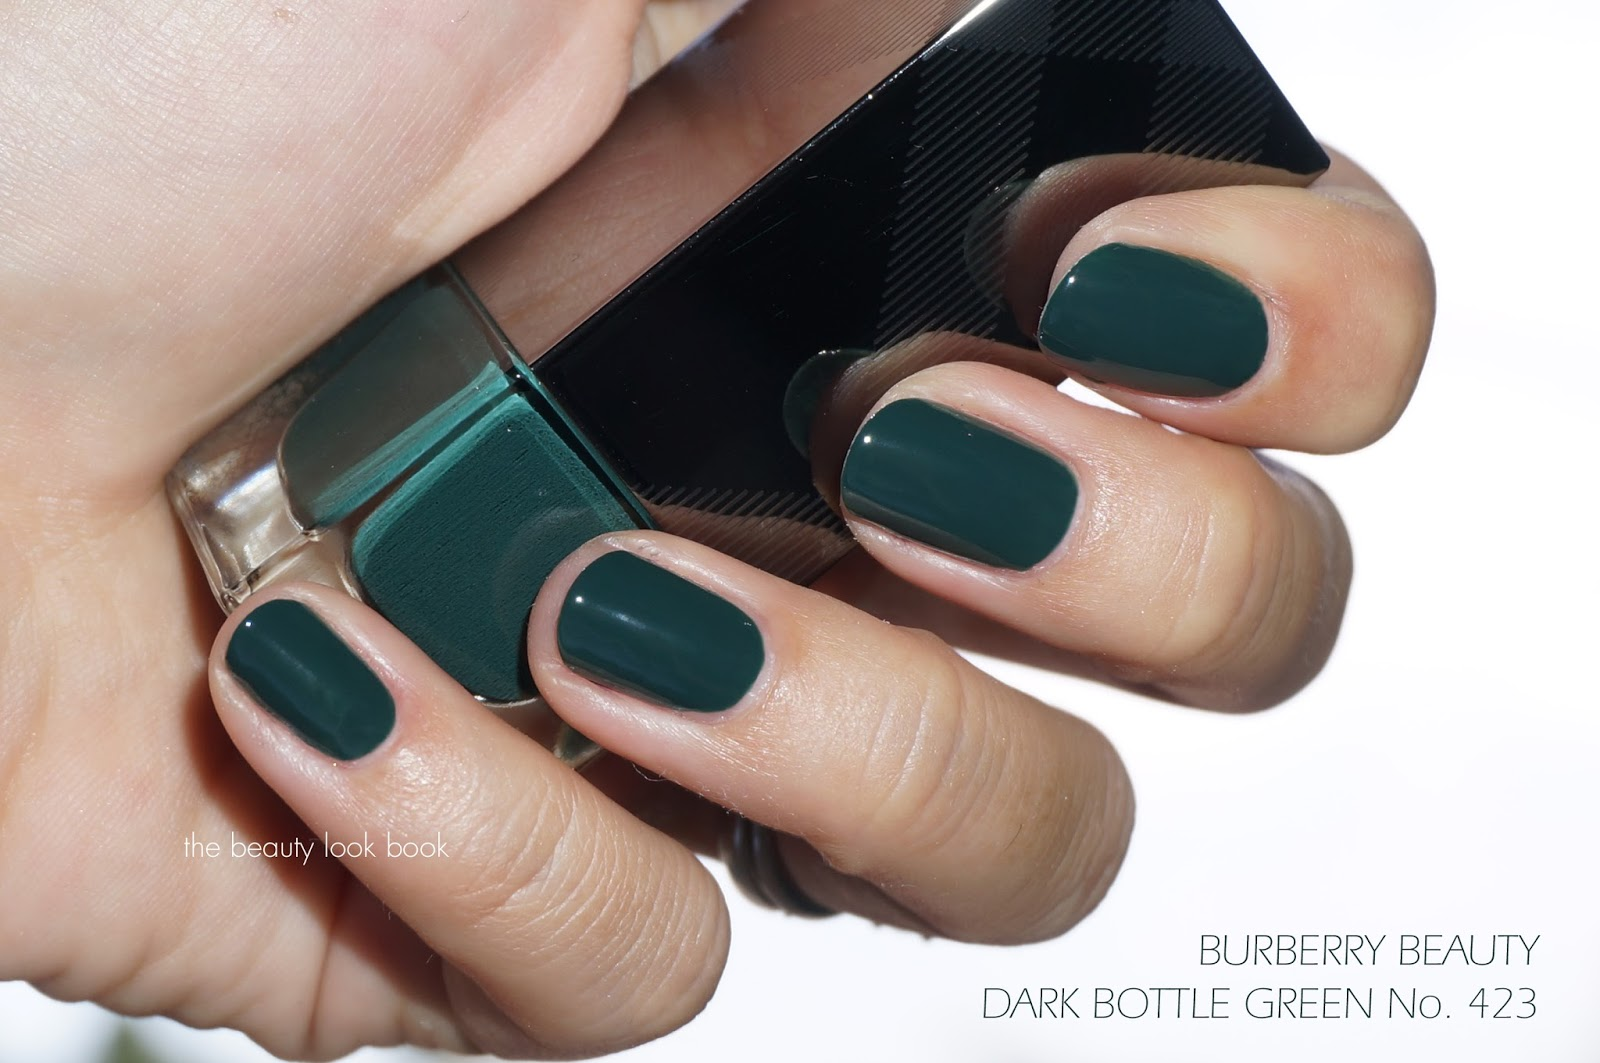 Burberry Beauty A/W 2014 Nail Polishes | Elderberry, Antique Gold ...